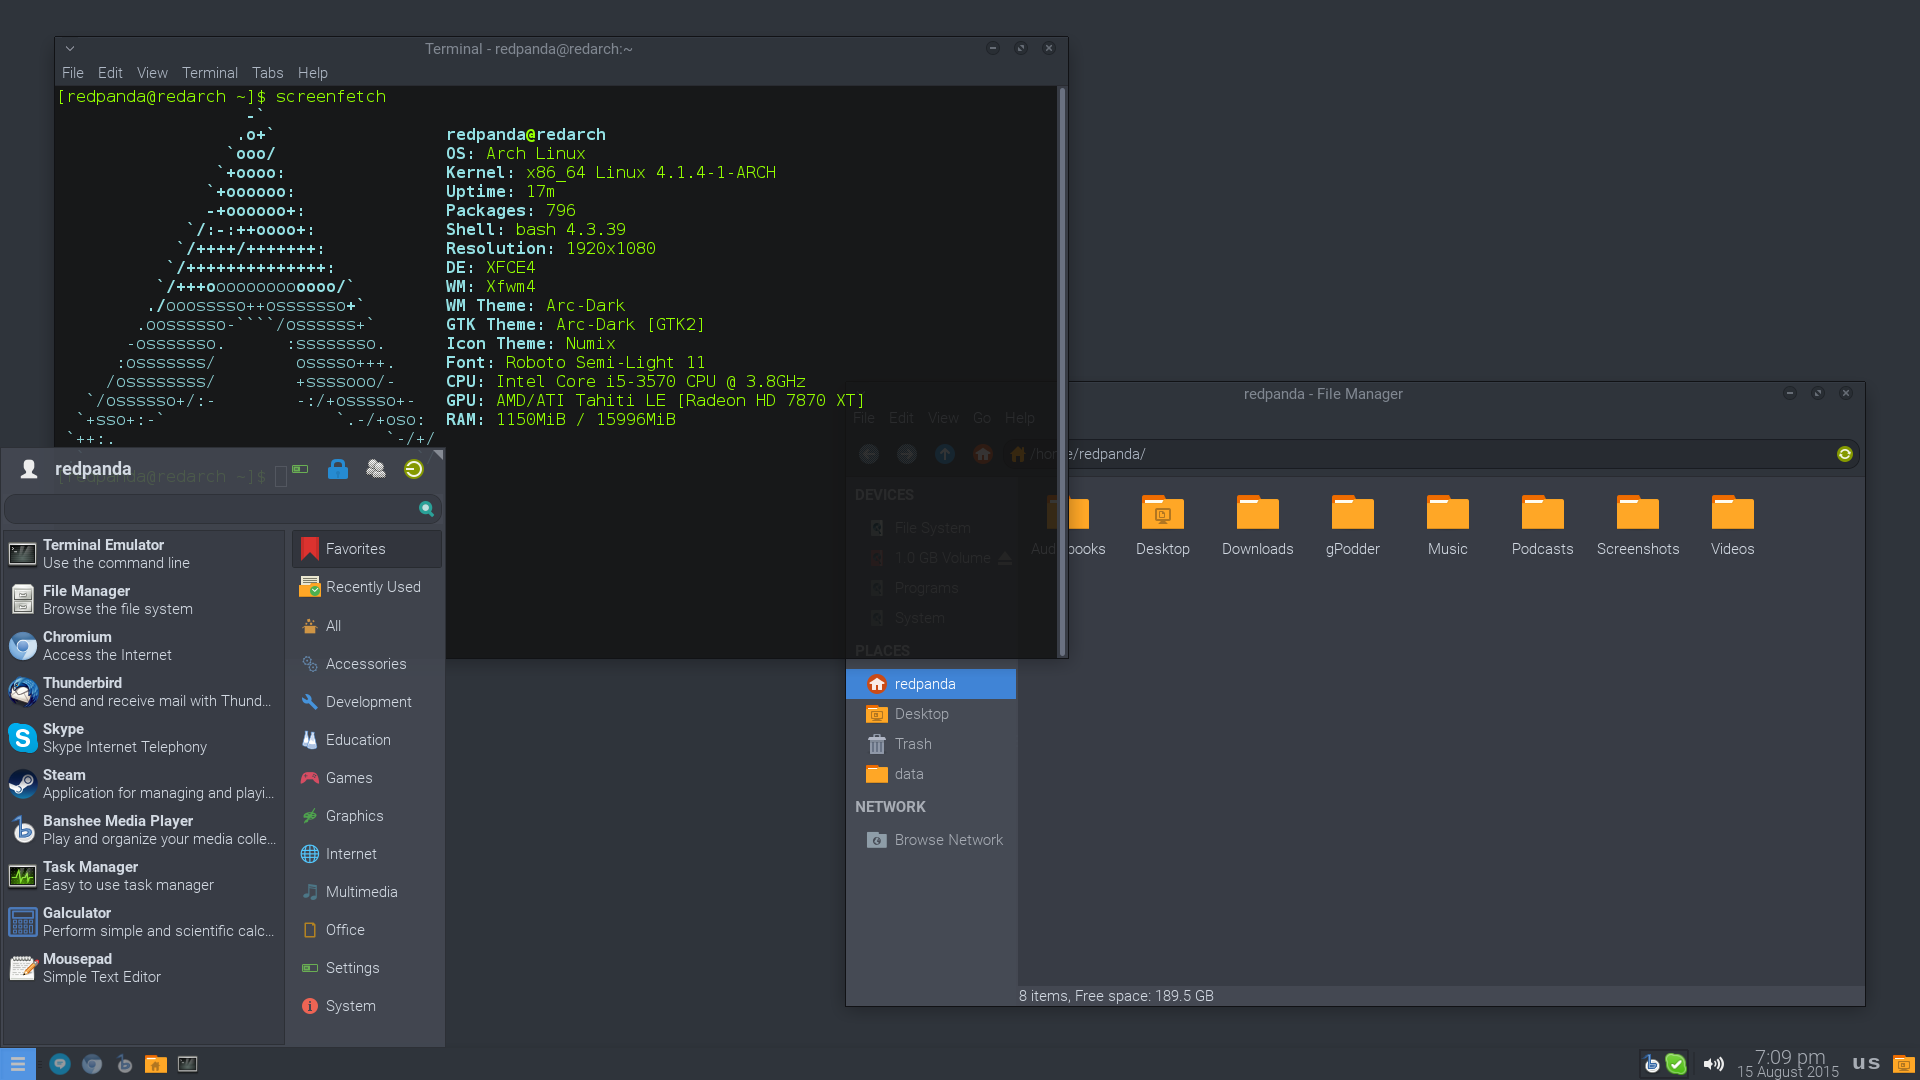 I Never Thought I'd Say This: 'I really like XFCE   ' - Linux